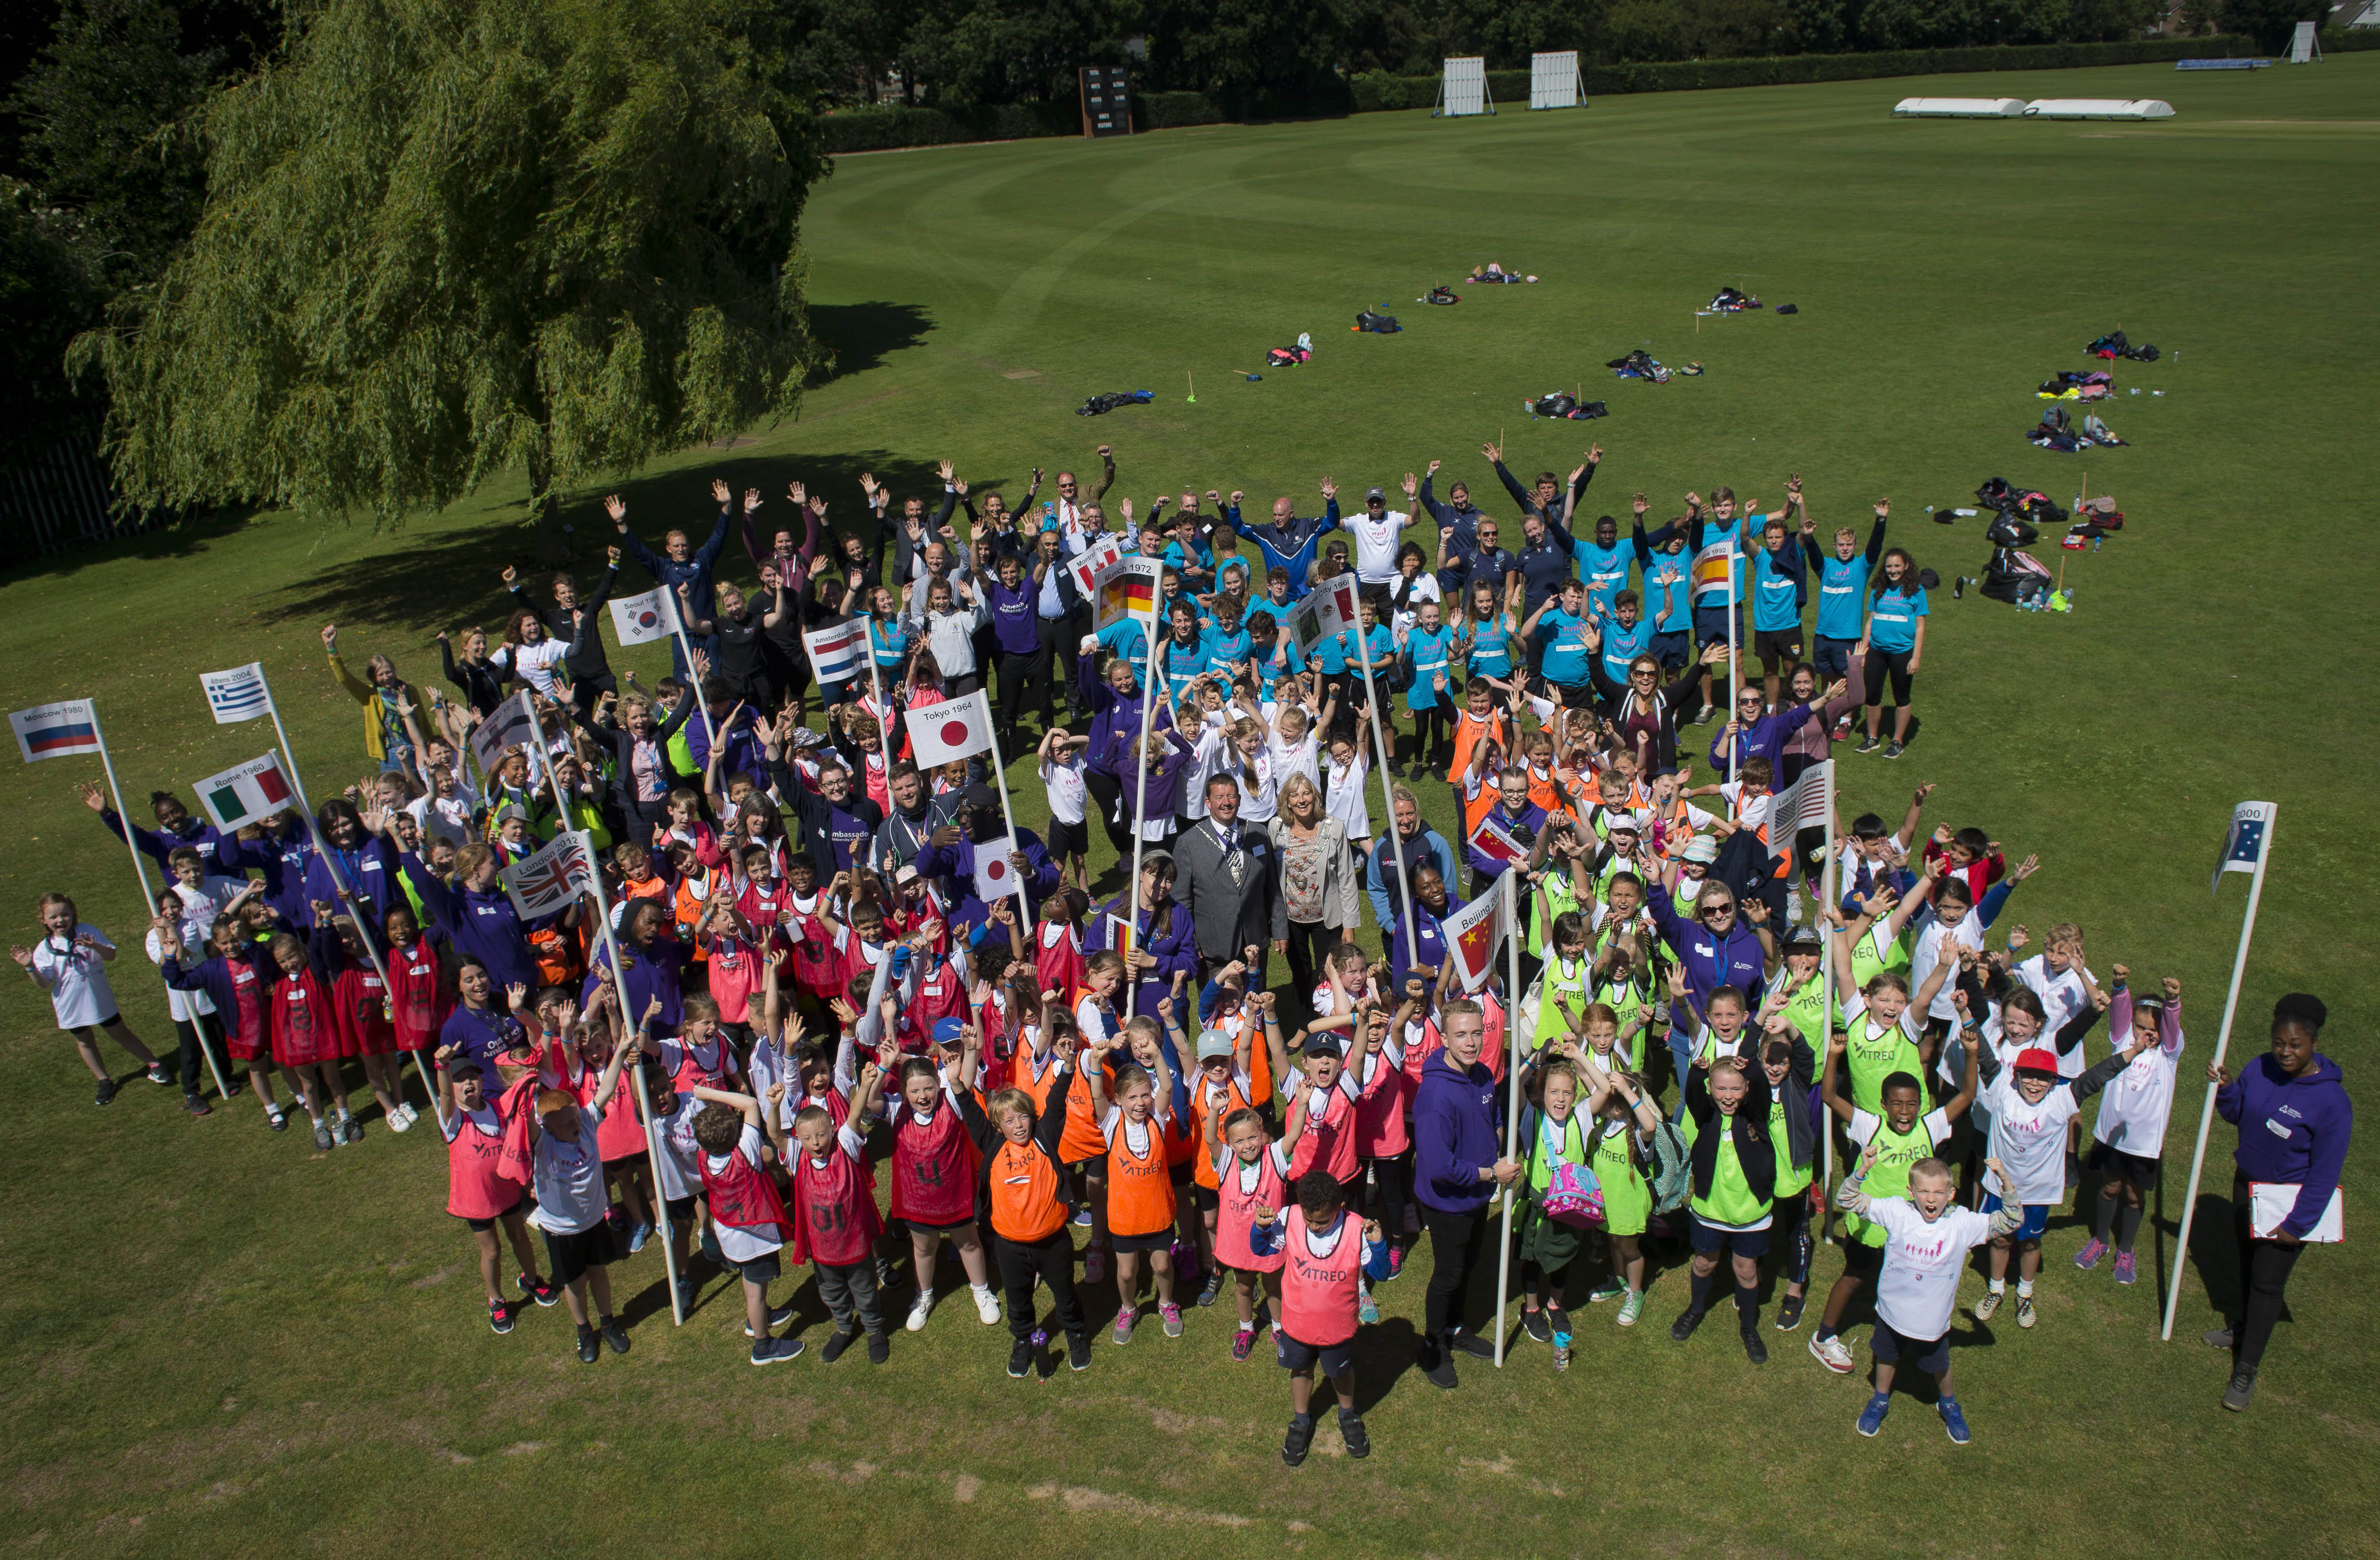 Local pupils take part in Minliympics sports day | Coombs